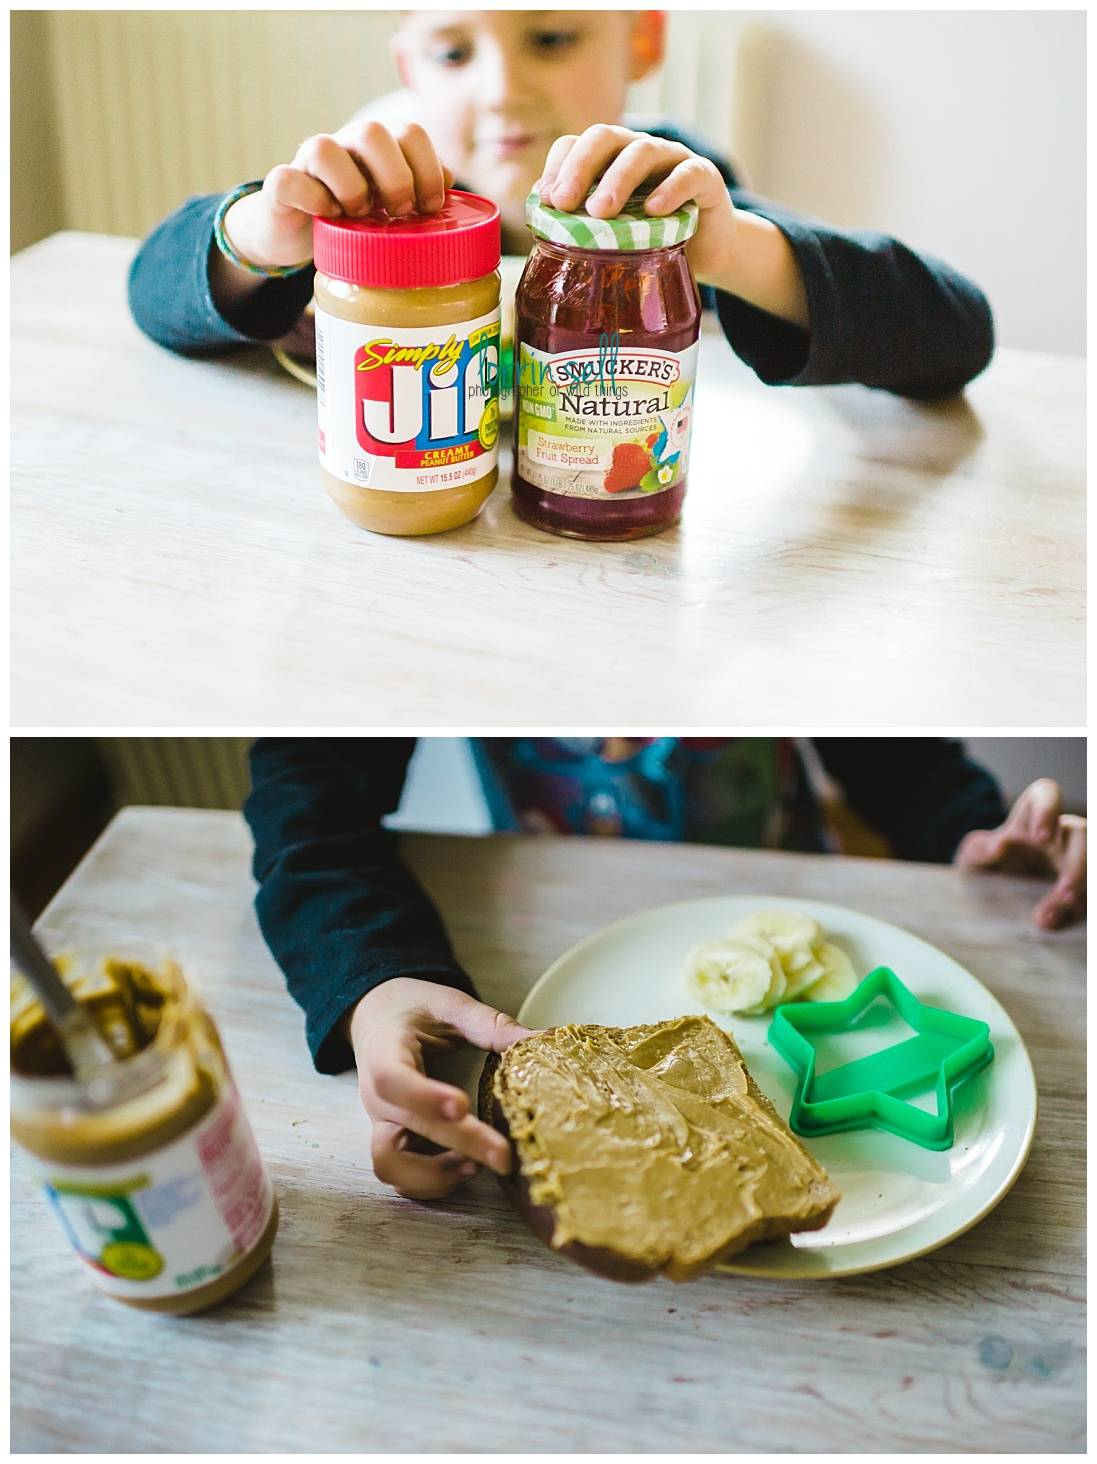 I love that this sandwich is so easy to make, and totally healthy. The kids love that it's a different way to eat peanut butter!